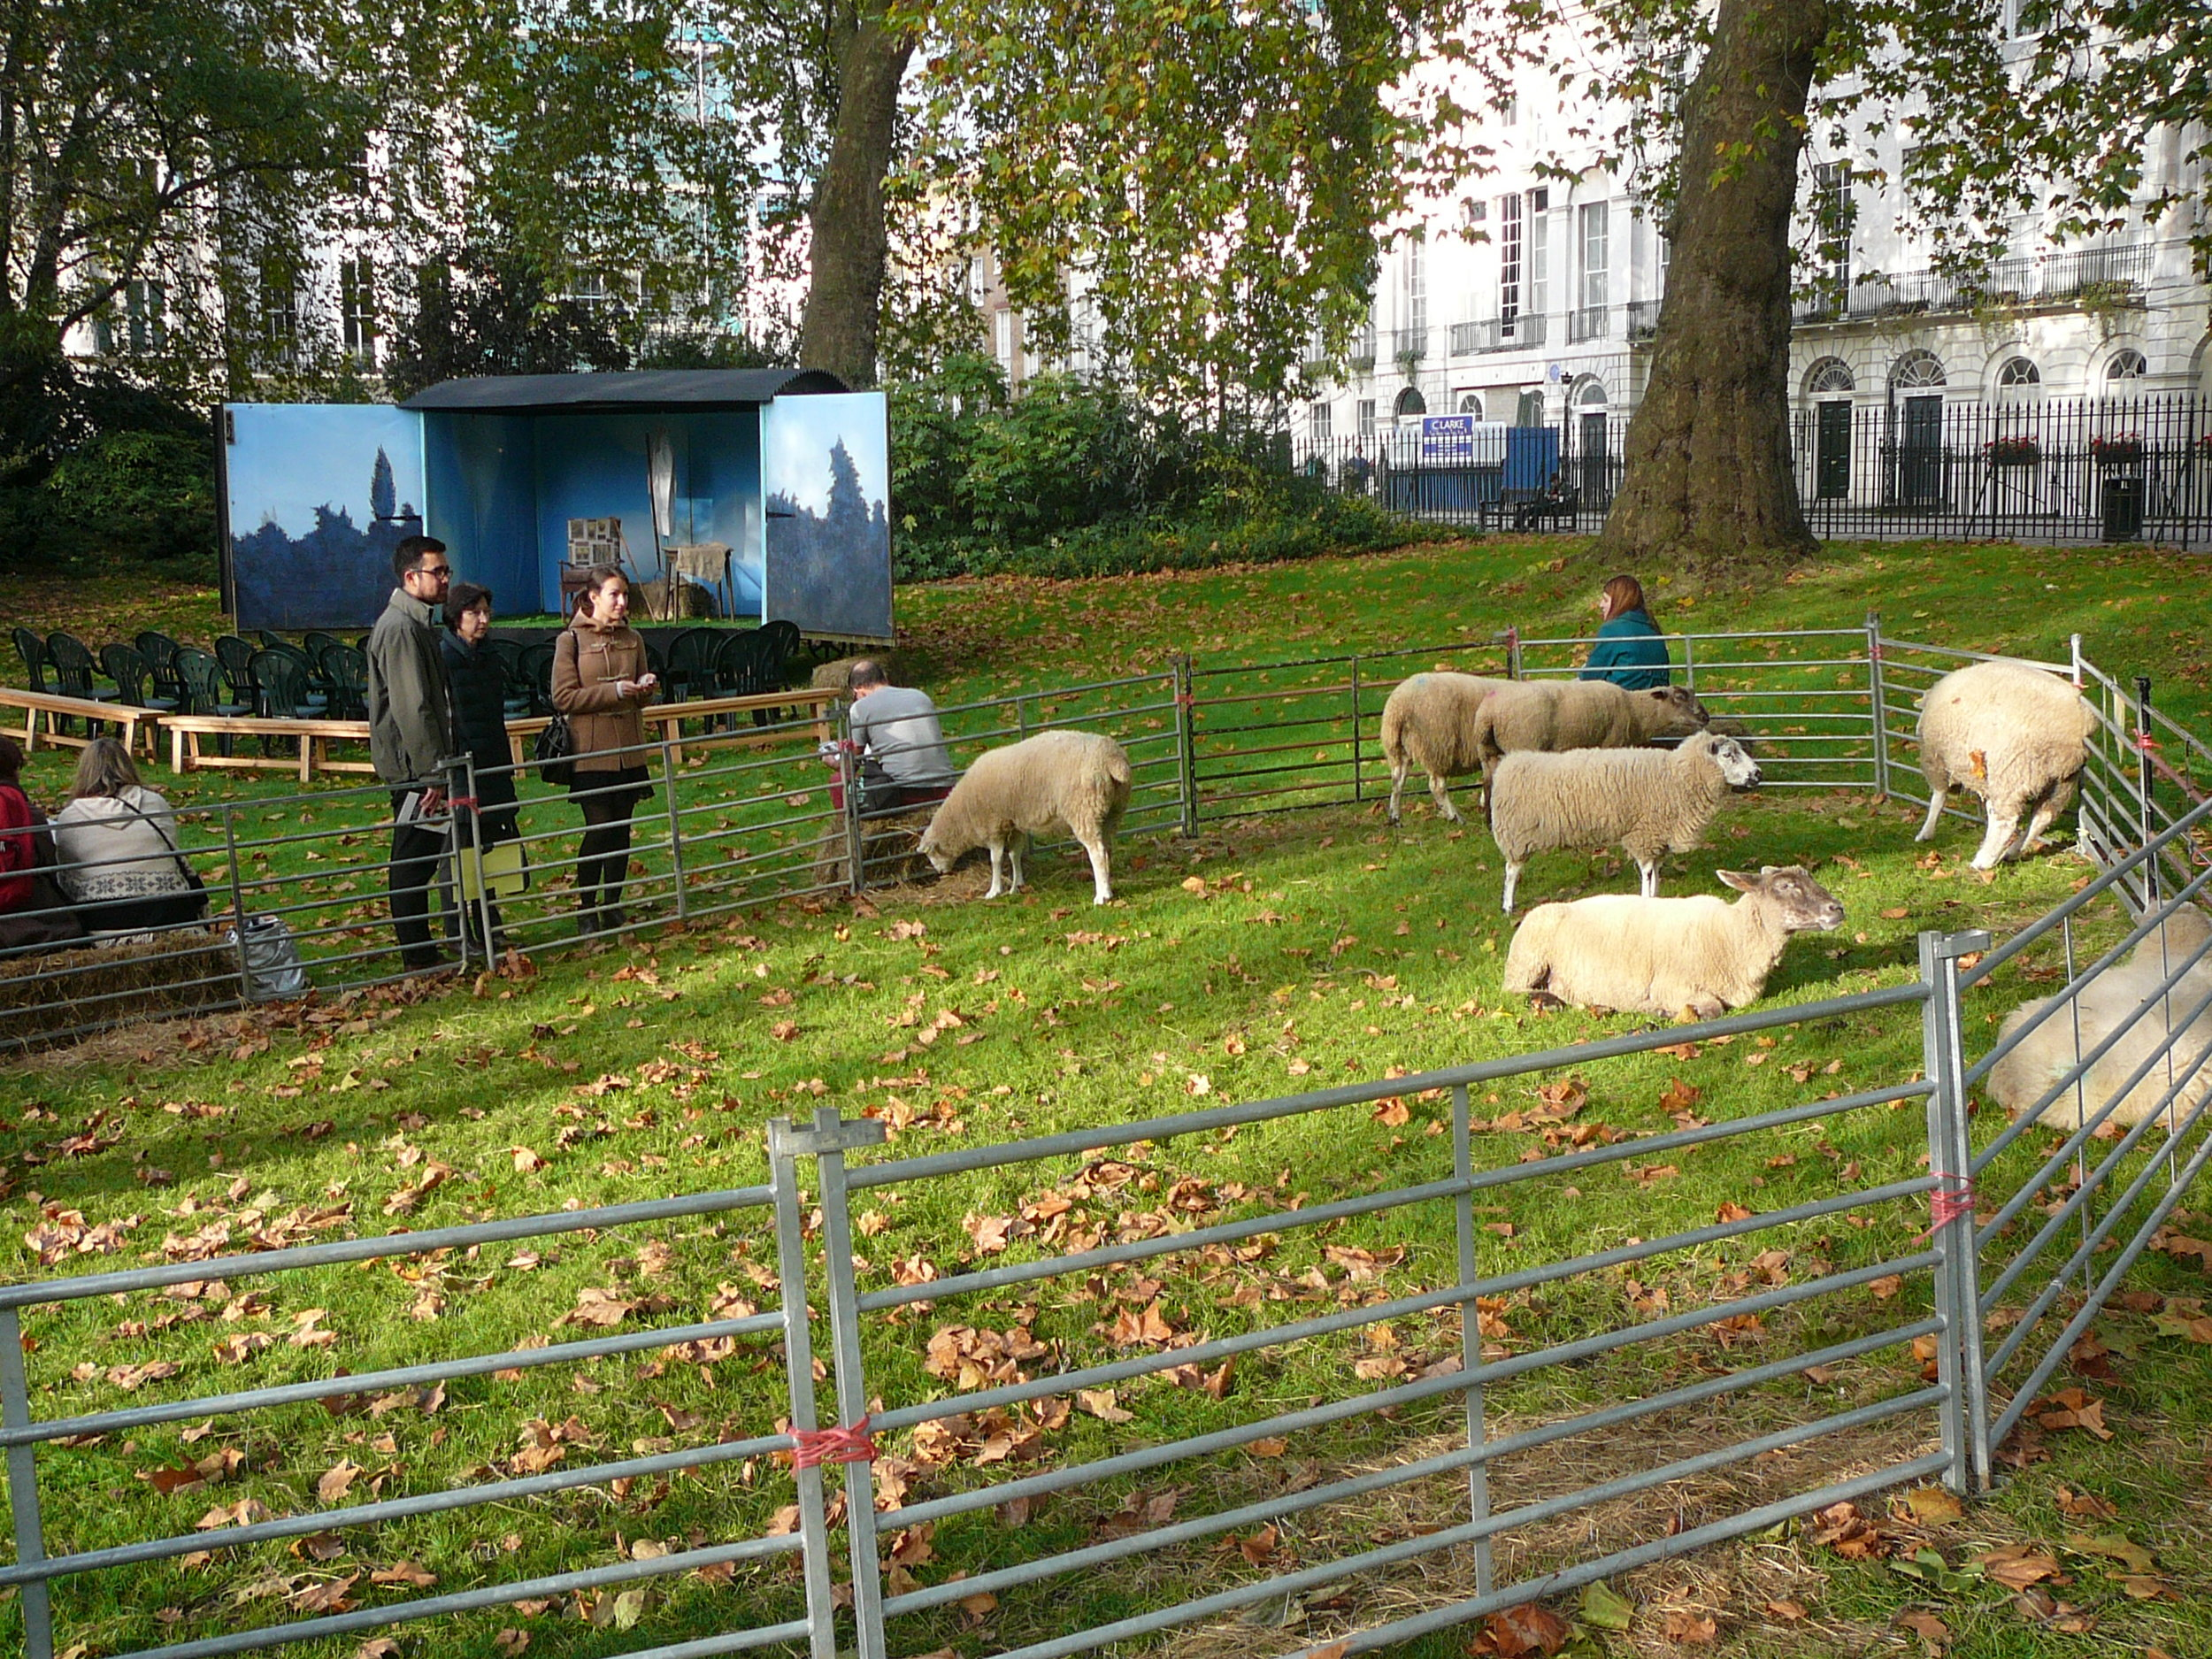 We are not the only ones with sheep in an urban setting! Spotted at a reading of Dylan Thomas' poetry in Fitzroy Square, London, October 2014.JPG